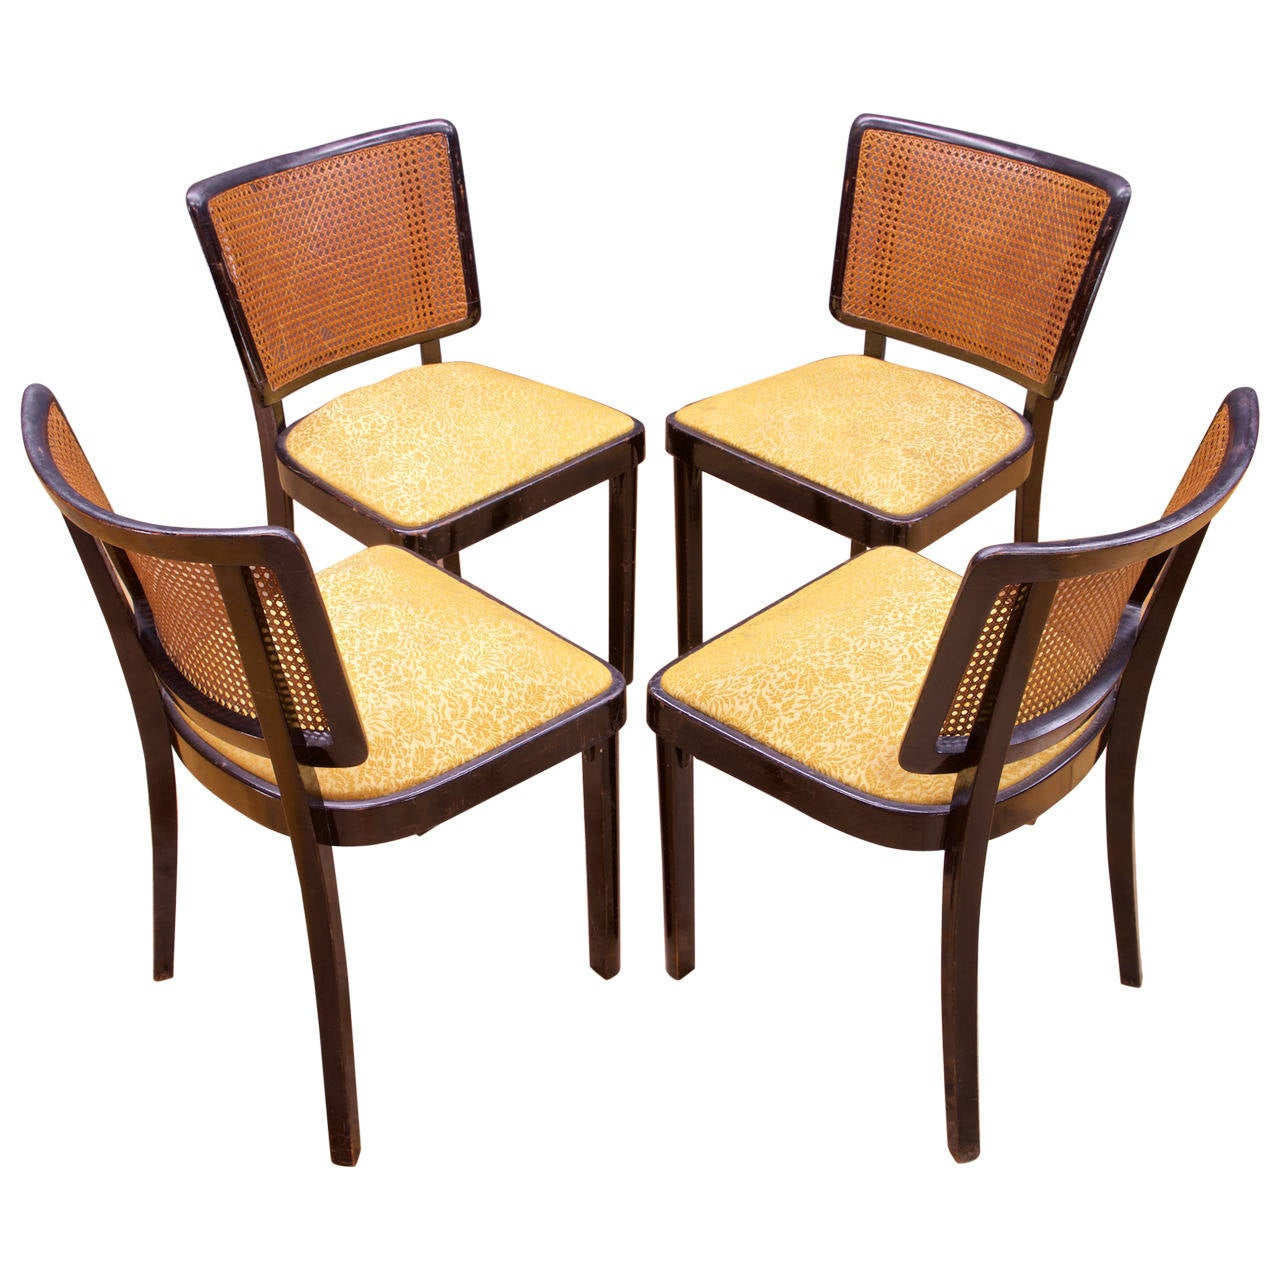 1930s Cane Wooden Thonet Dining Chairs At 1stdibs